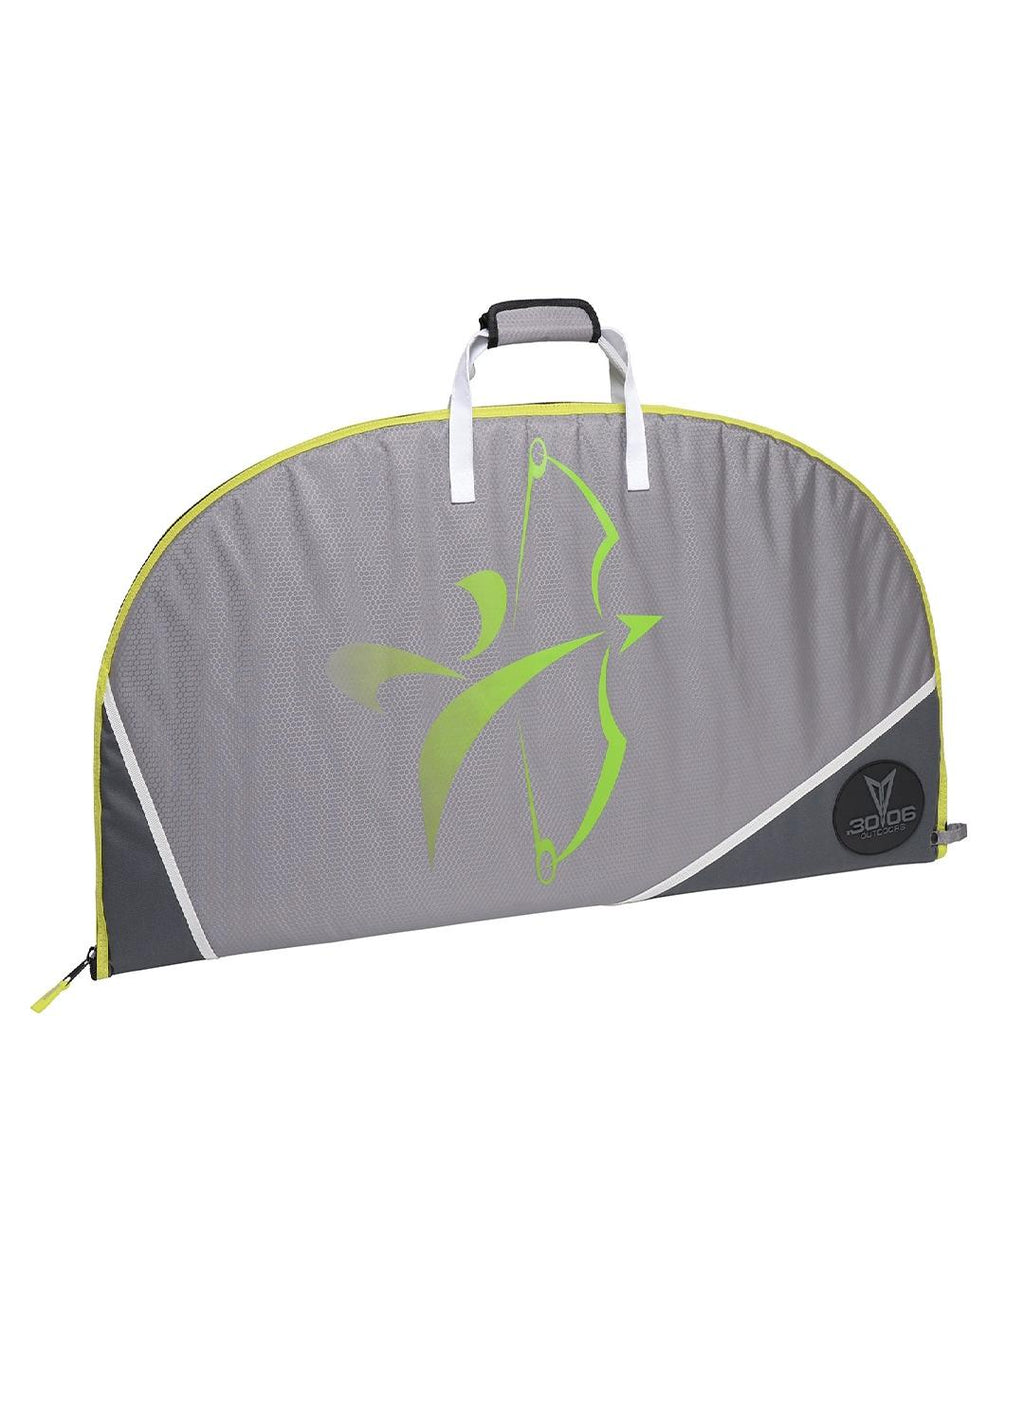 ".30-06 Outdoors 40"" Freestyle Bow Case with Green Accent"